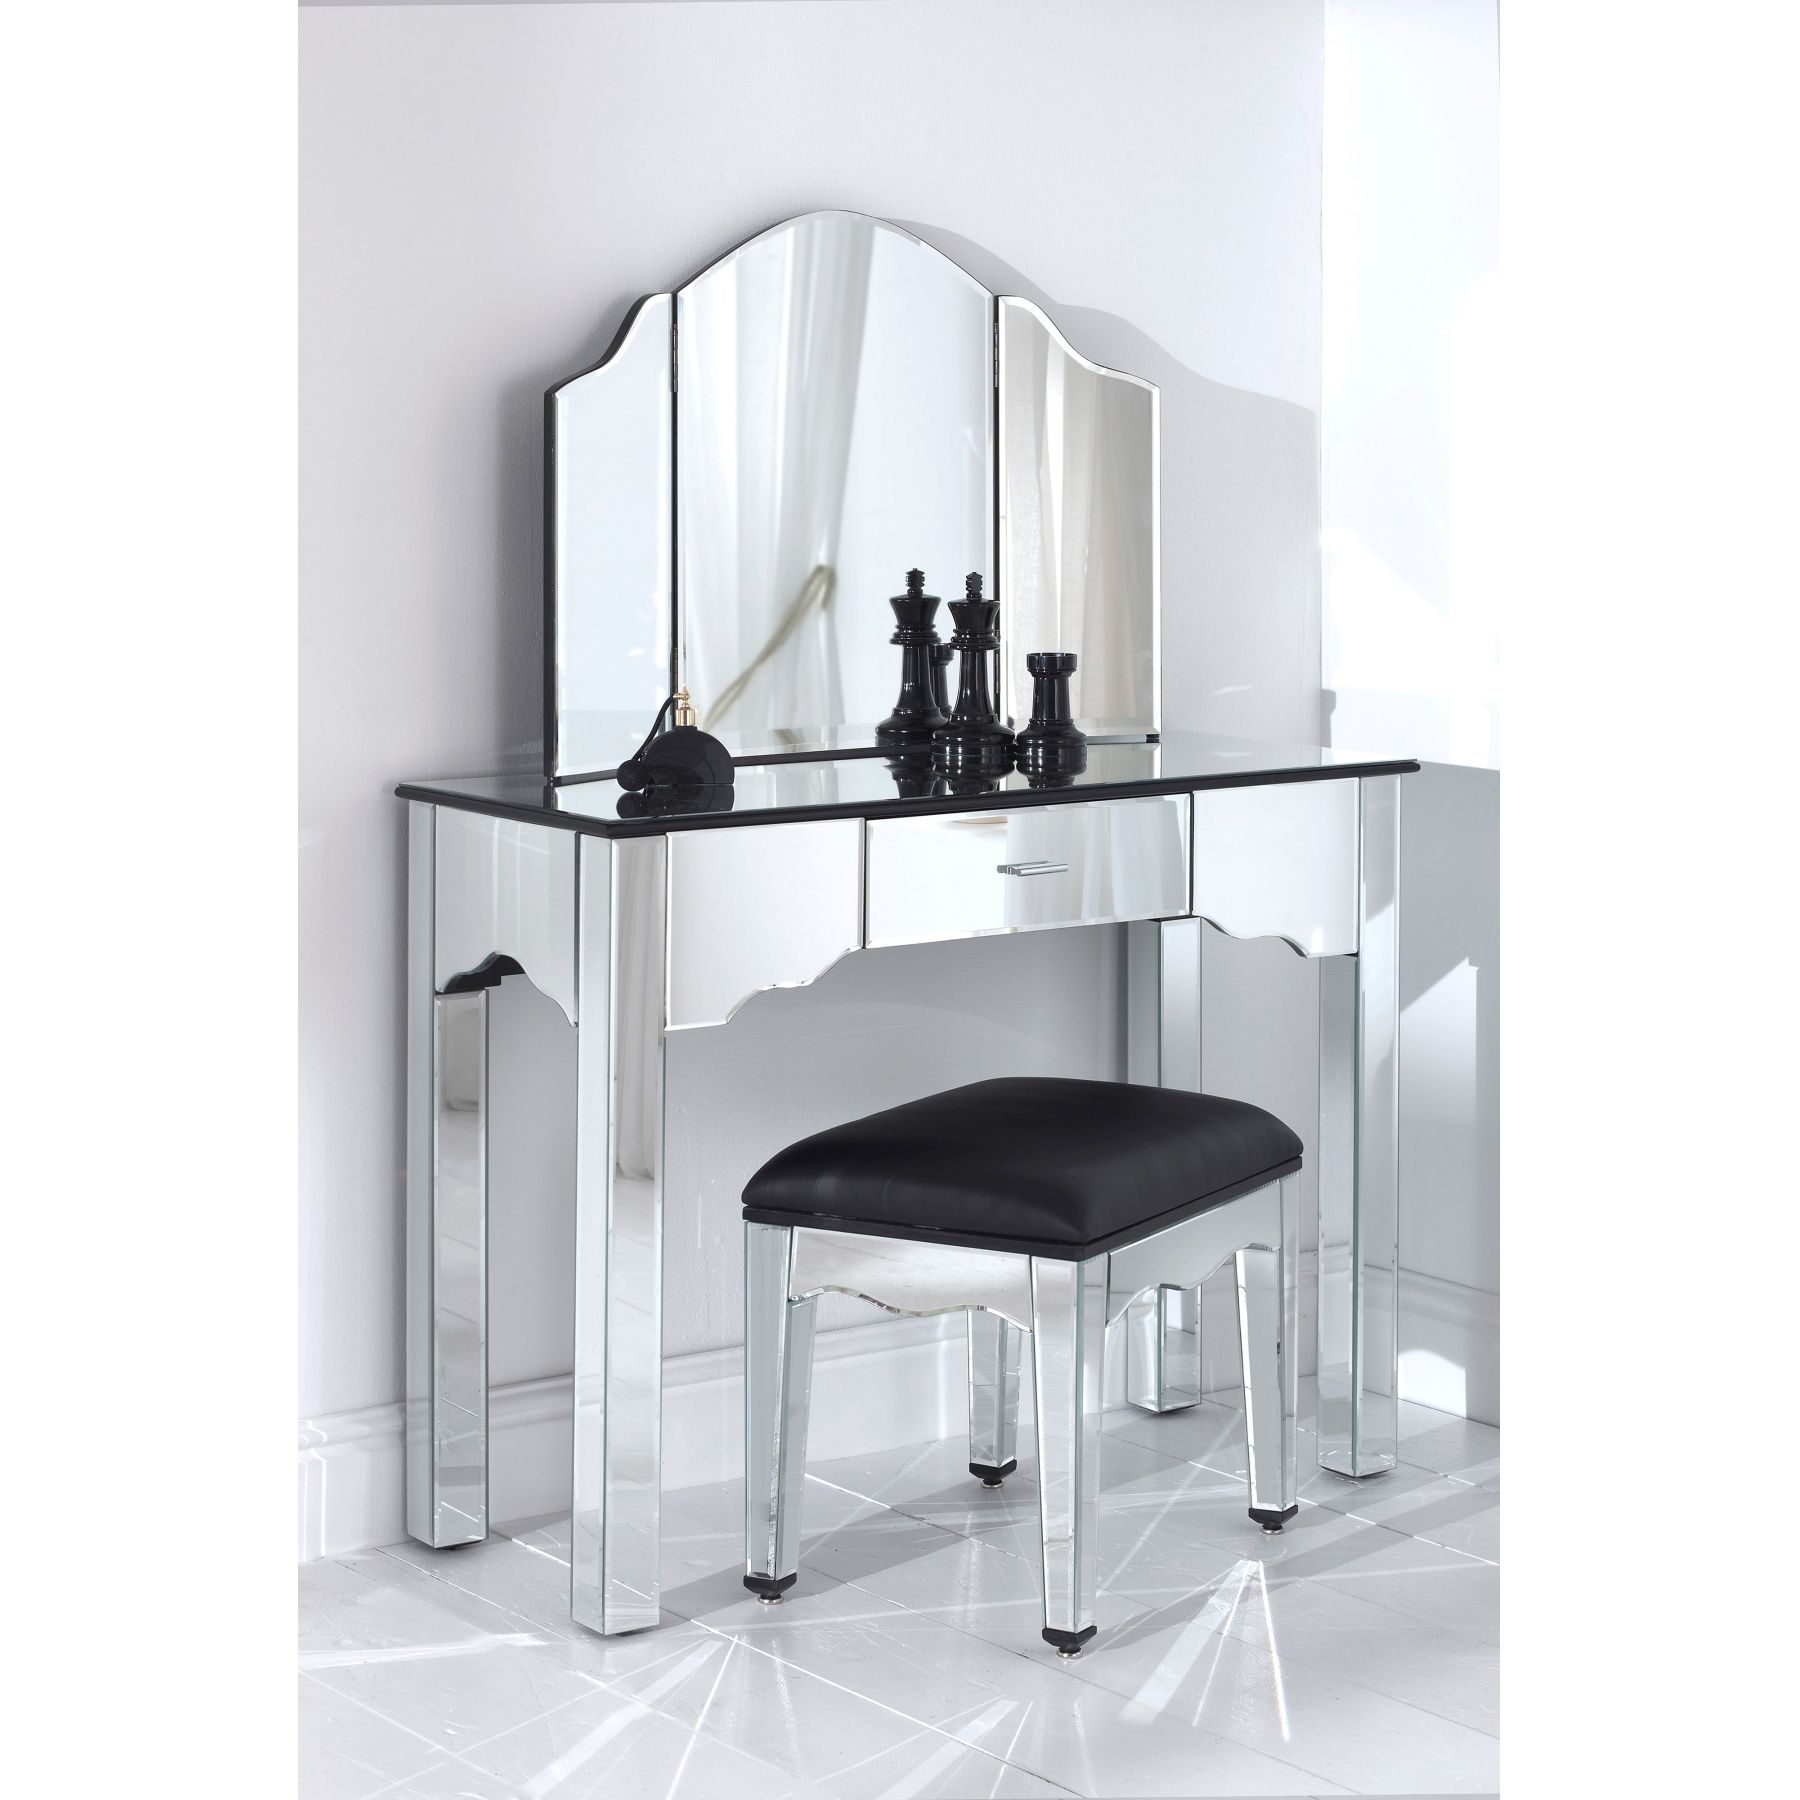 Bedroom Furniture Bedroom Vanity Bathroom Mirrors Vintage Inside Contemporary Dressing Table Mirrors (Image 3 of 15)